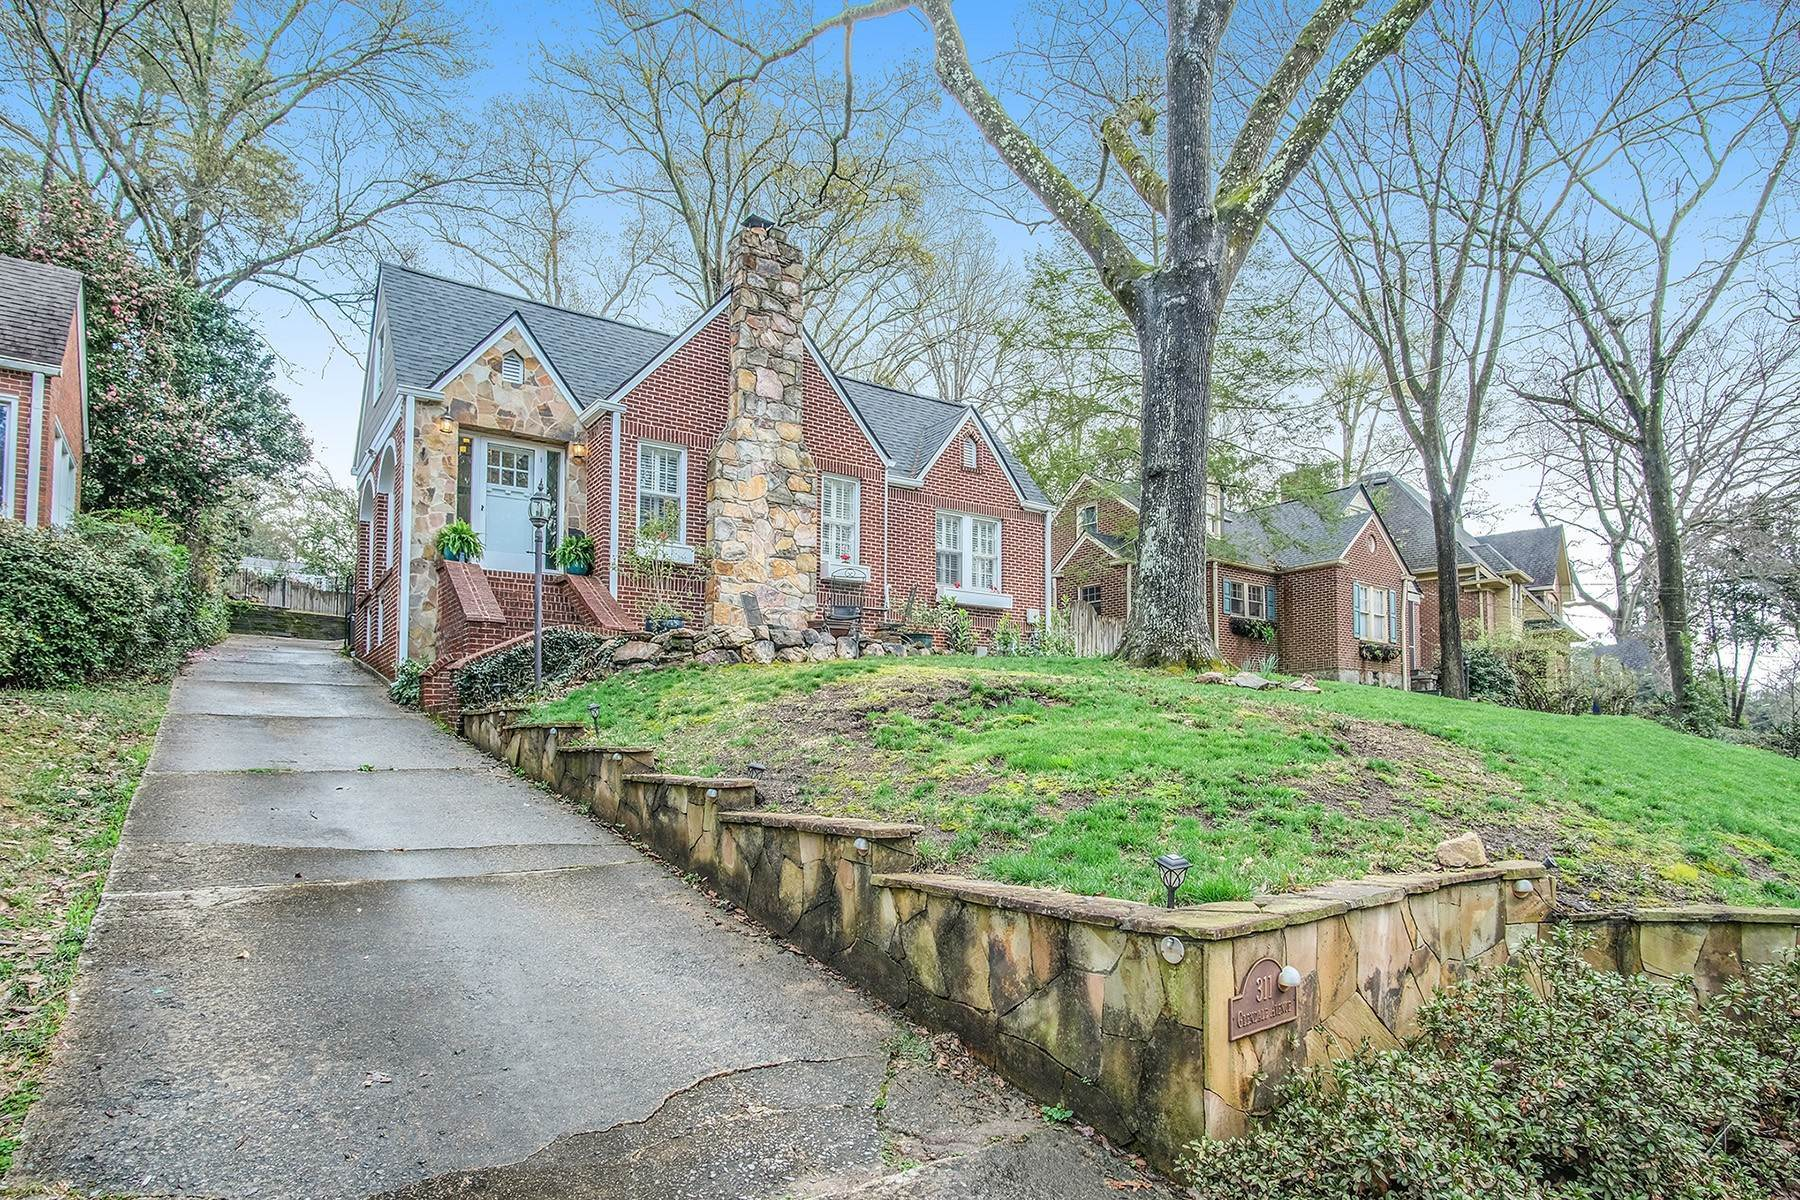 Single Family Homes for Active at Classic Intown Stone And Red Brick Tudor In The City Of Decatur 311 Glendale Avenue Decatur, Georgia 30030 United States